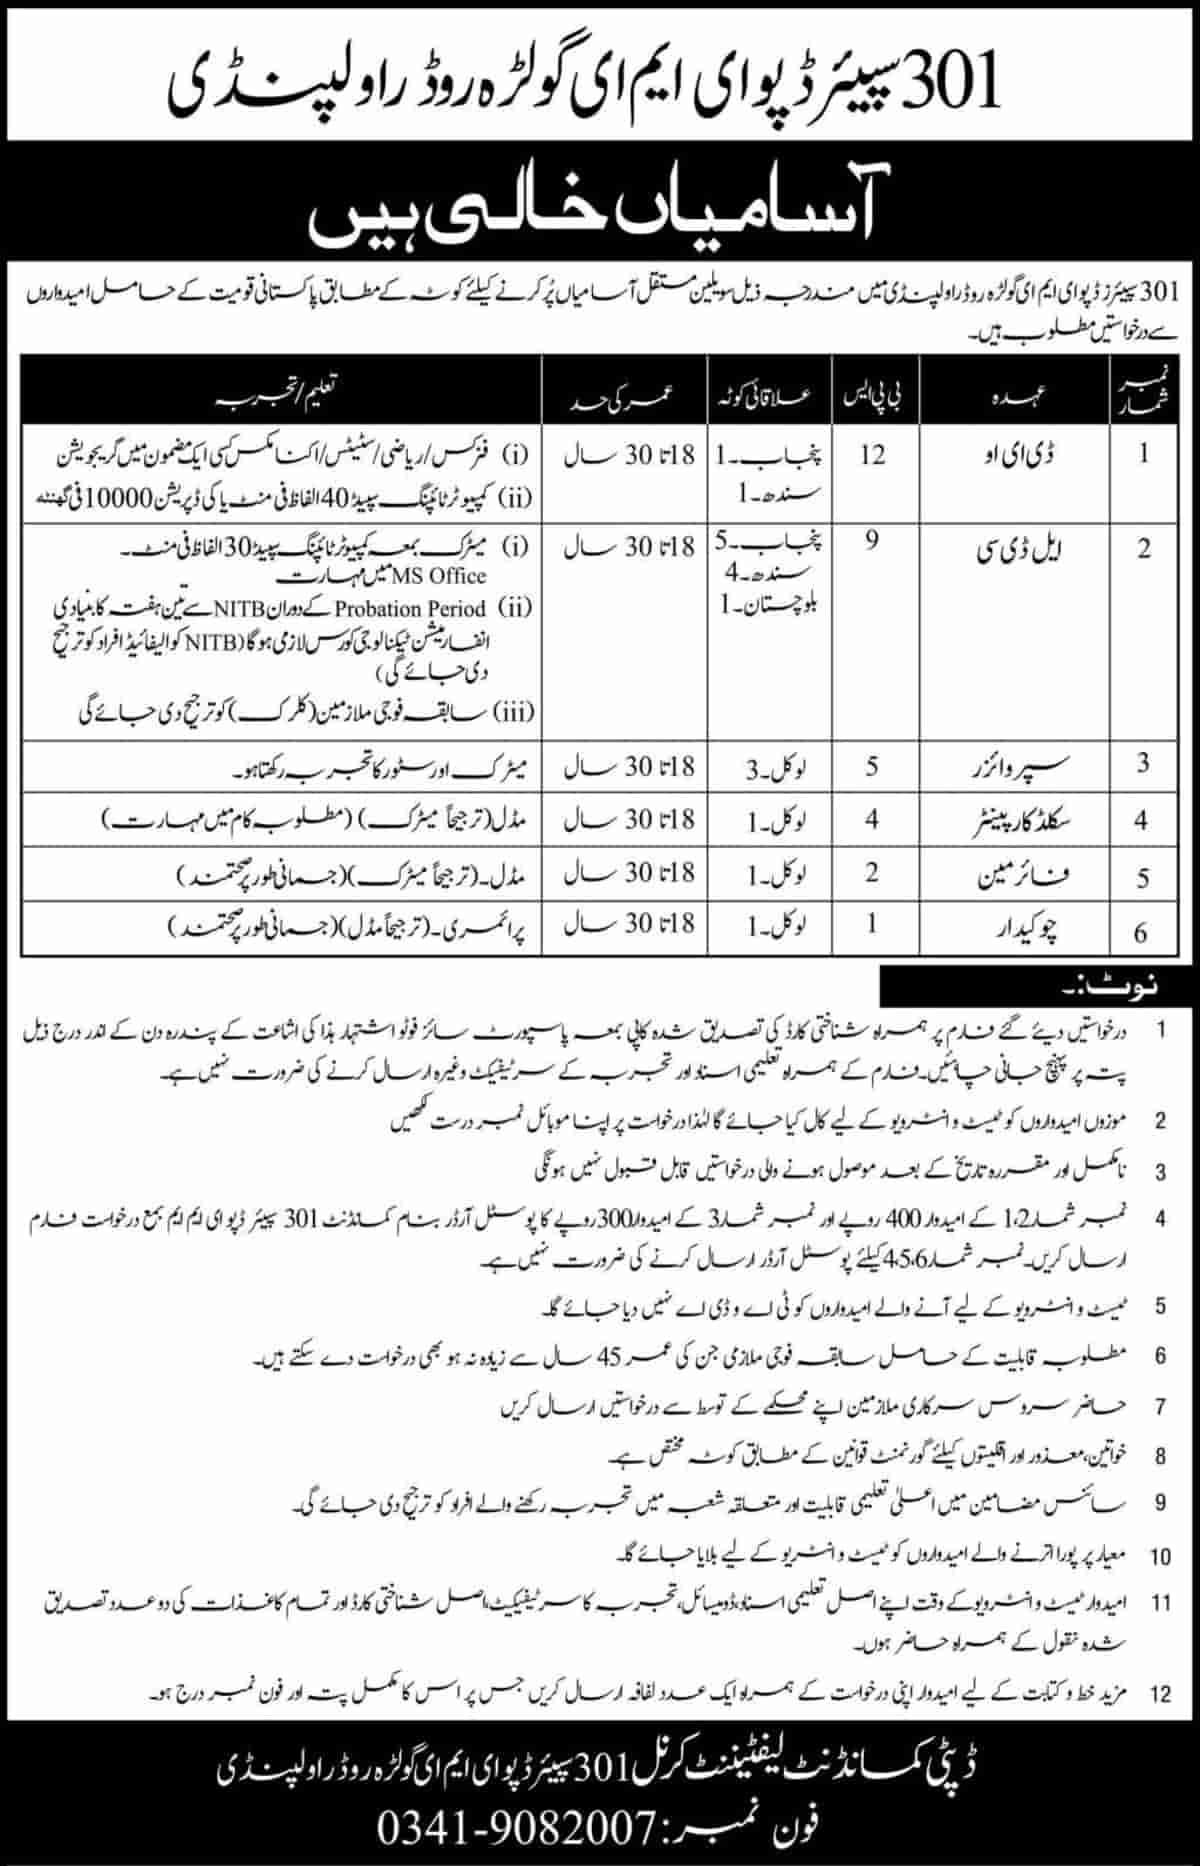 Pakistan Army 301 Spare Depot EME Golra Rawalpindi Jobs June 2020